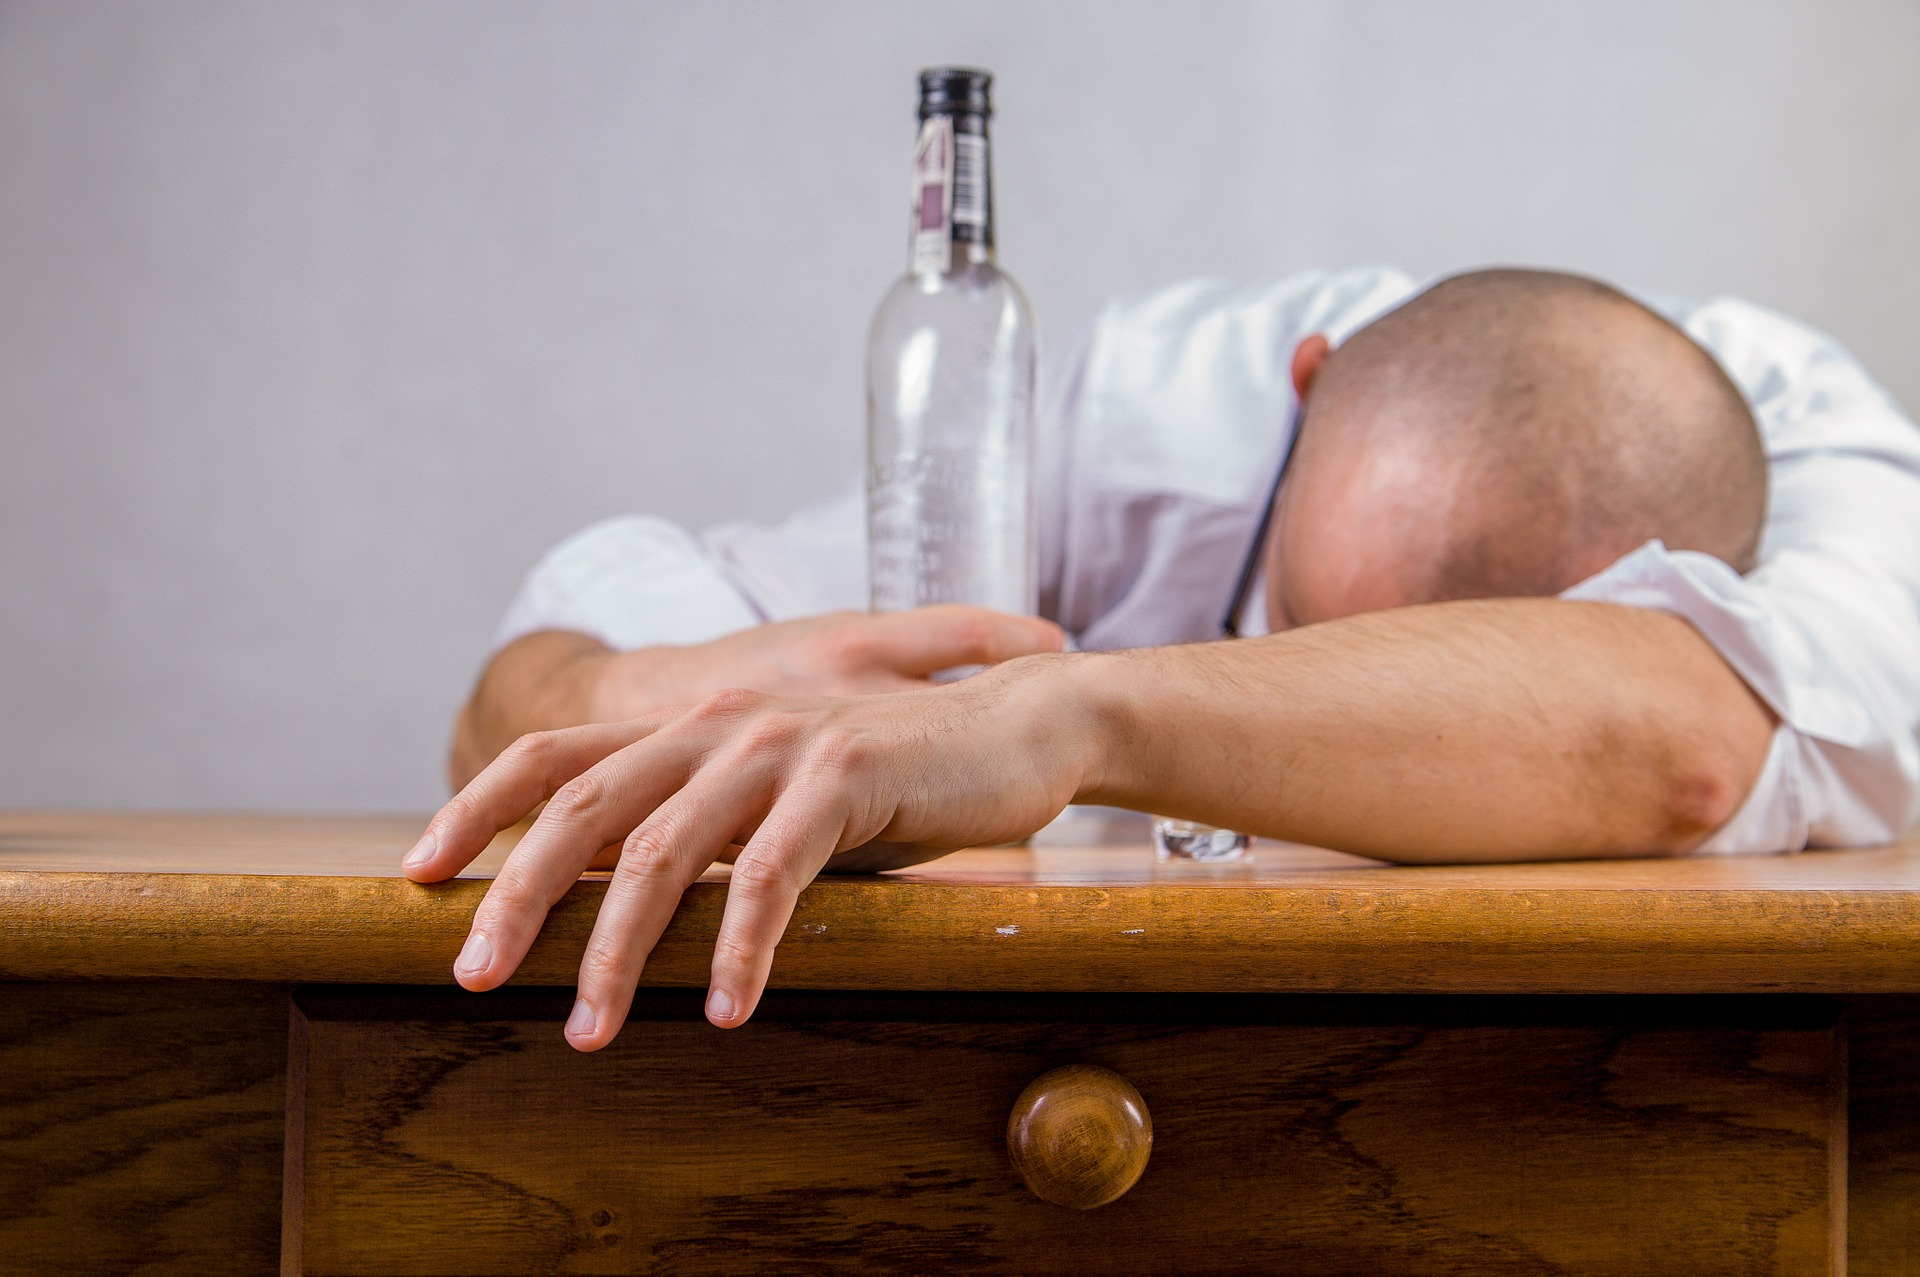 Why Haven't I Relapsed From Alcohol?